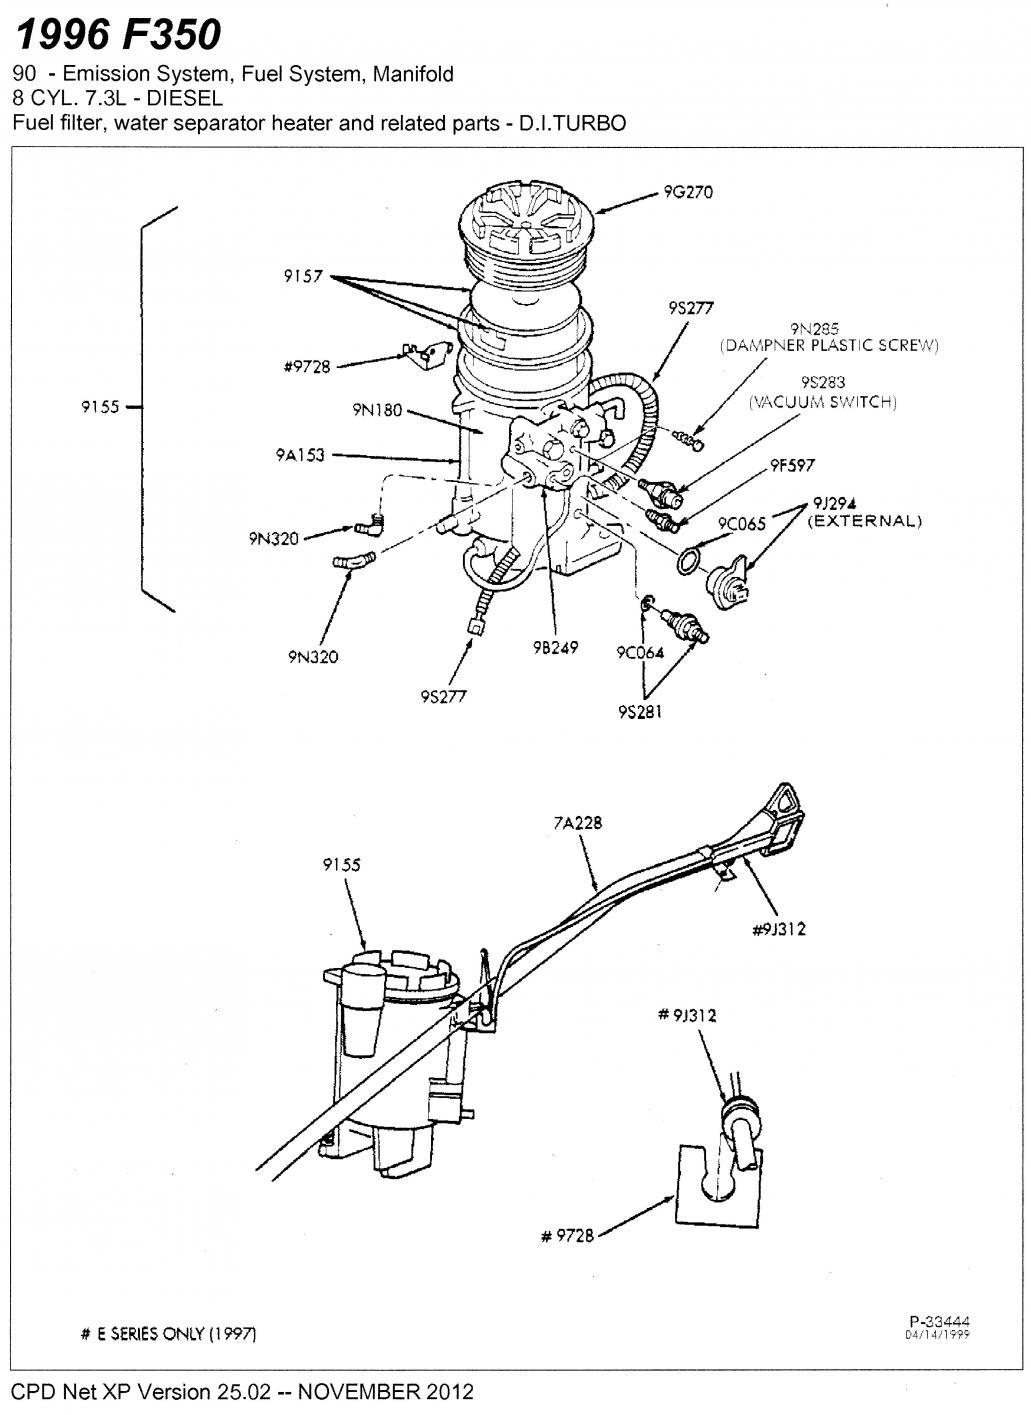 7 3 Powerstroke Engine Oil Diagram 7 3l Powerstroke Oil Flow Diagram Wiring Diagram Odicis